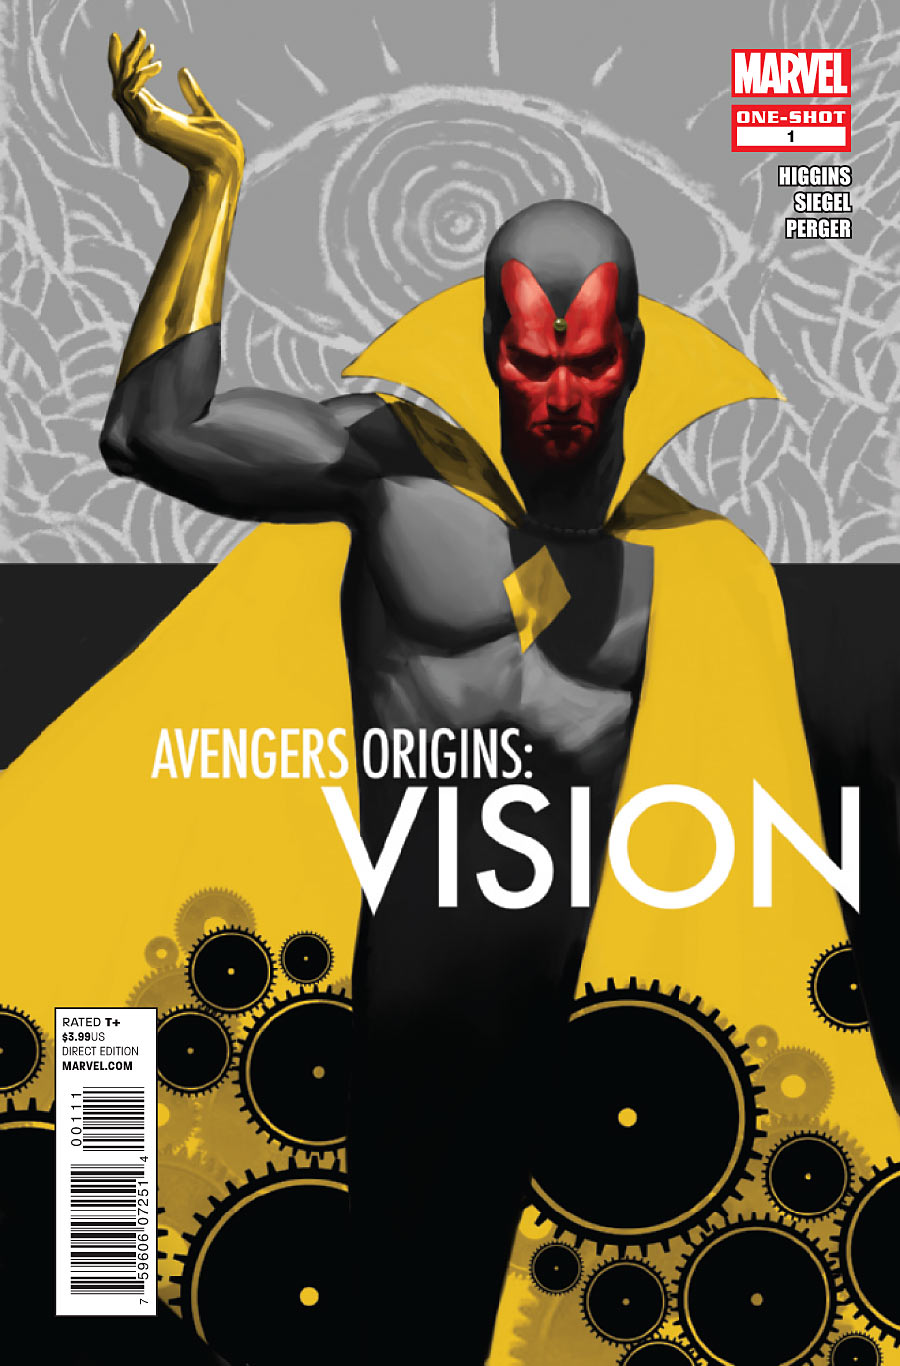 Avengers Origins: Vision Vol 1 1 | Marvel Database | FANDOM